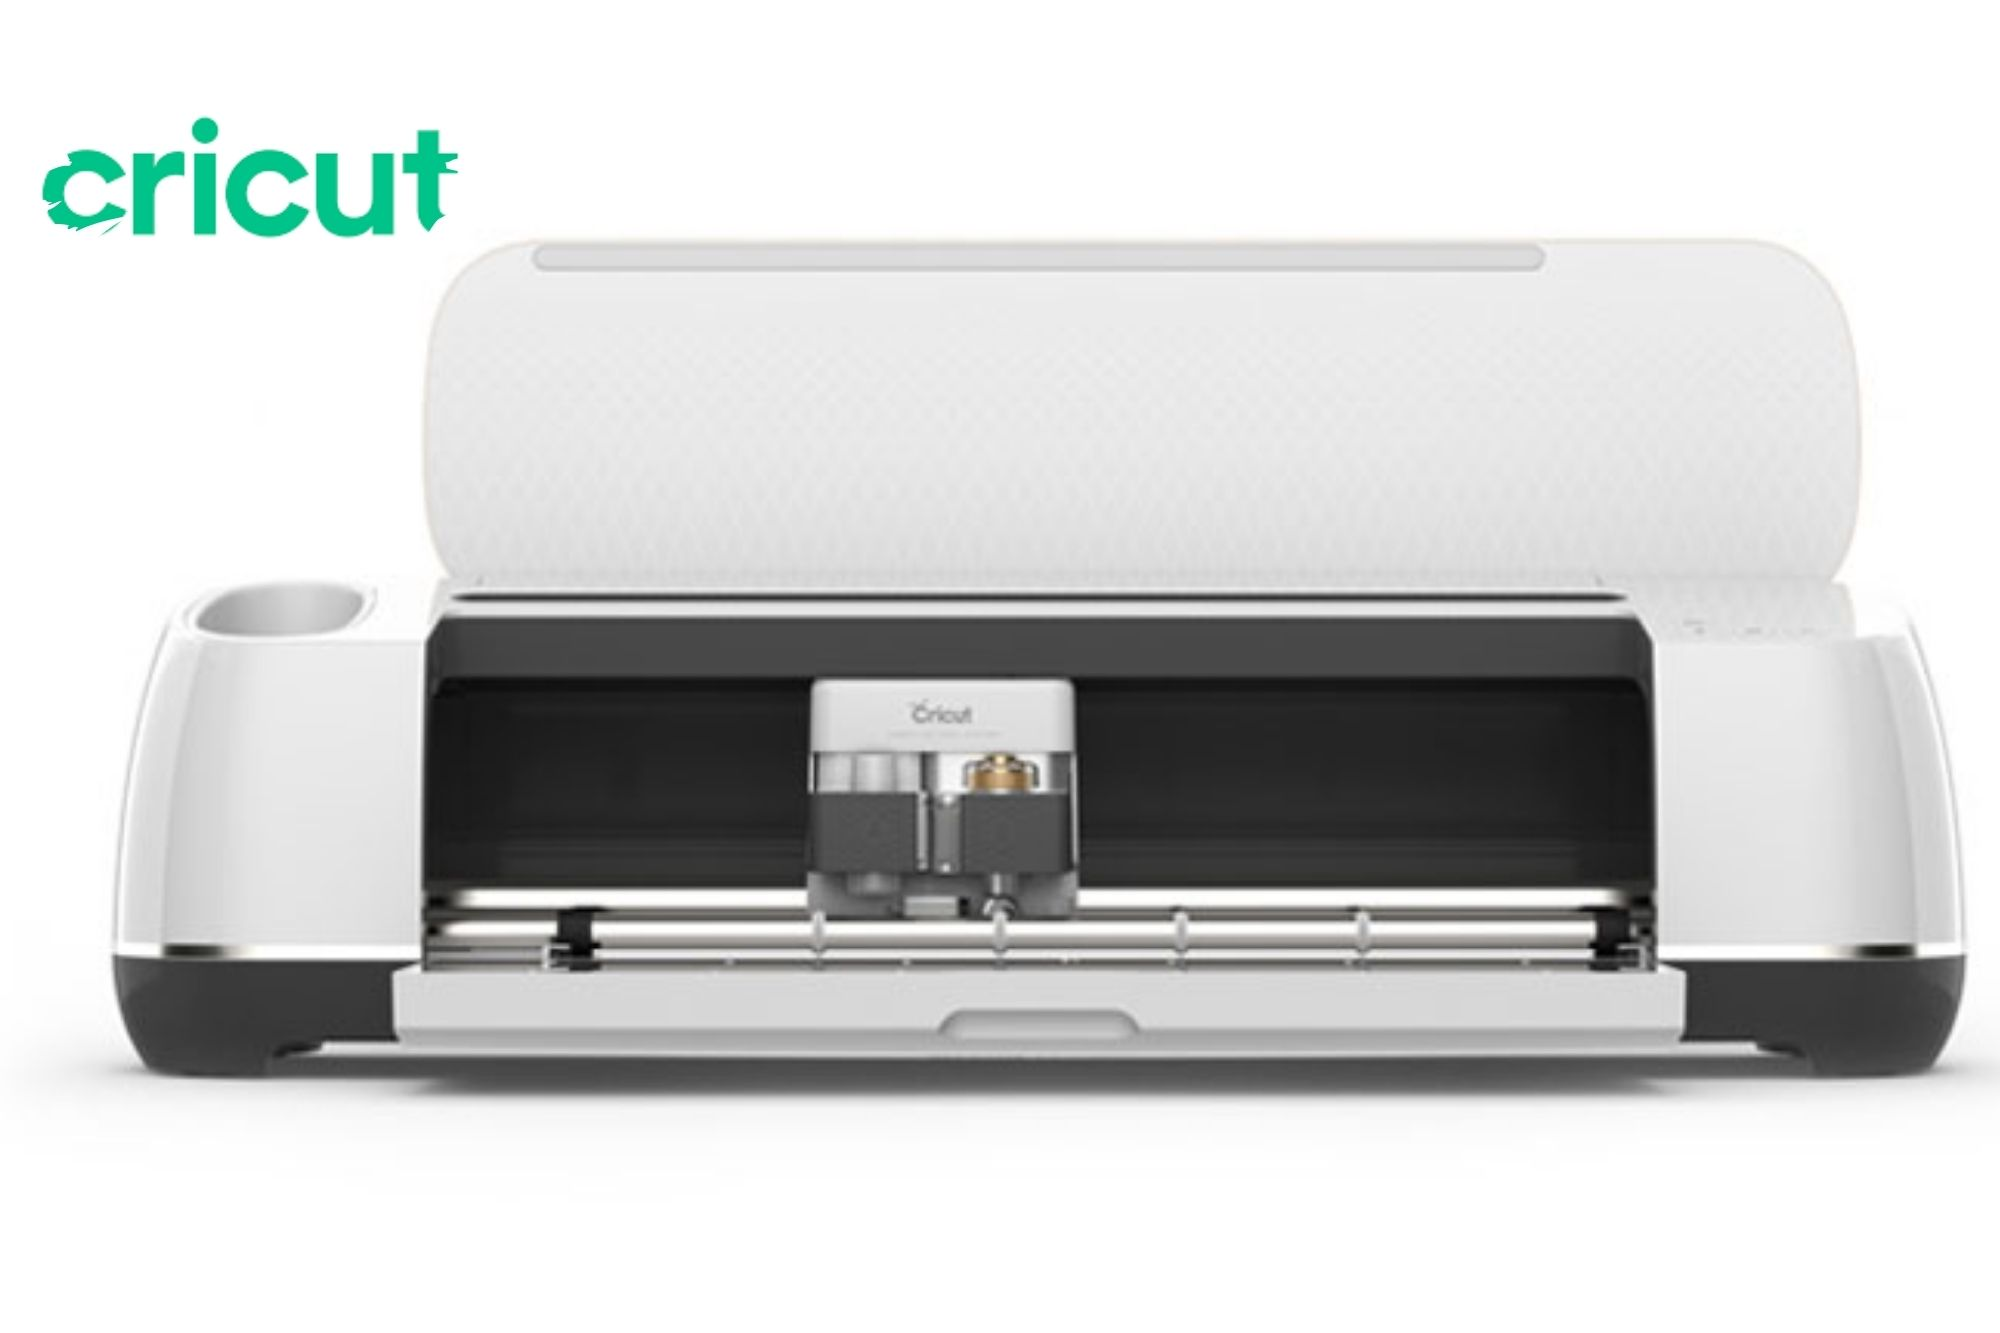 Do Cricut Machines Ever Go On Sale? Do Cricuts Ever Go On Sale? Why Cricuts Have High Prices? How Is Cricut Good And Why Is It On Sale? Cricuts: To Buy Or Not To Buy? Can Cricuts Go On Sale Every Week? Is There A Variety Of Cricut Colors Available On Sale? Are Cricuts Available On Black Friday Or Cyber Monday Sales? Are the Black Friday and Cyber Monday deals are genuine? What Is The Best Dealing Site To Buy Cricut Machines?